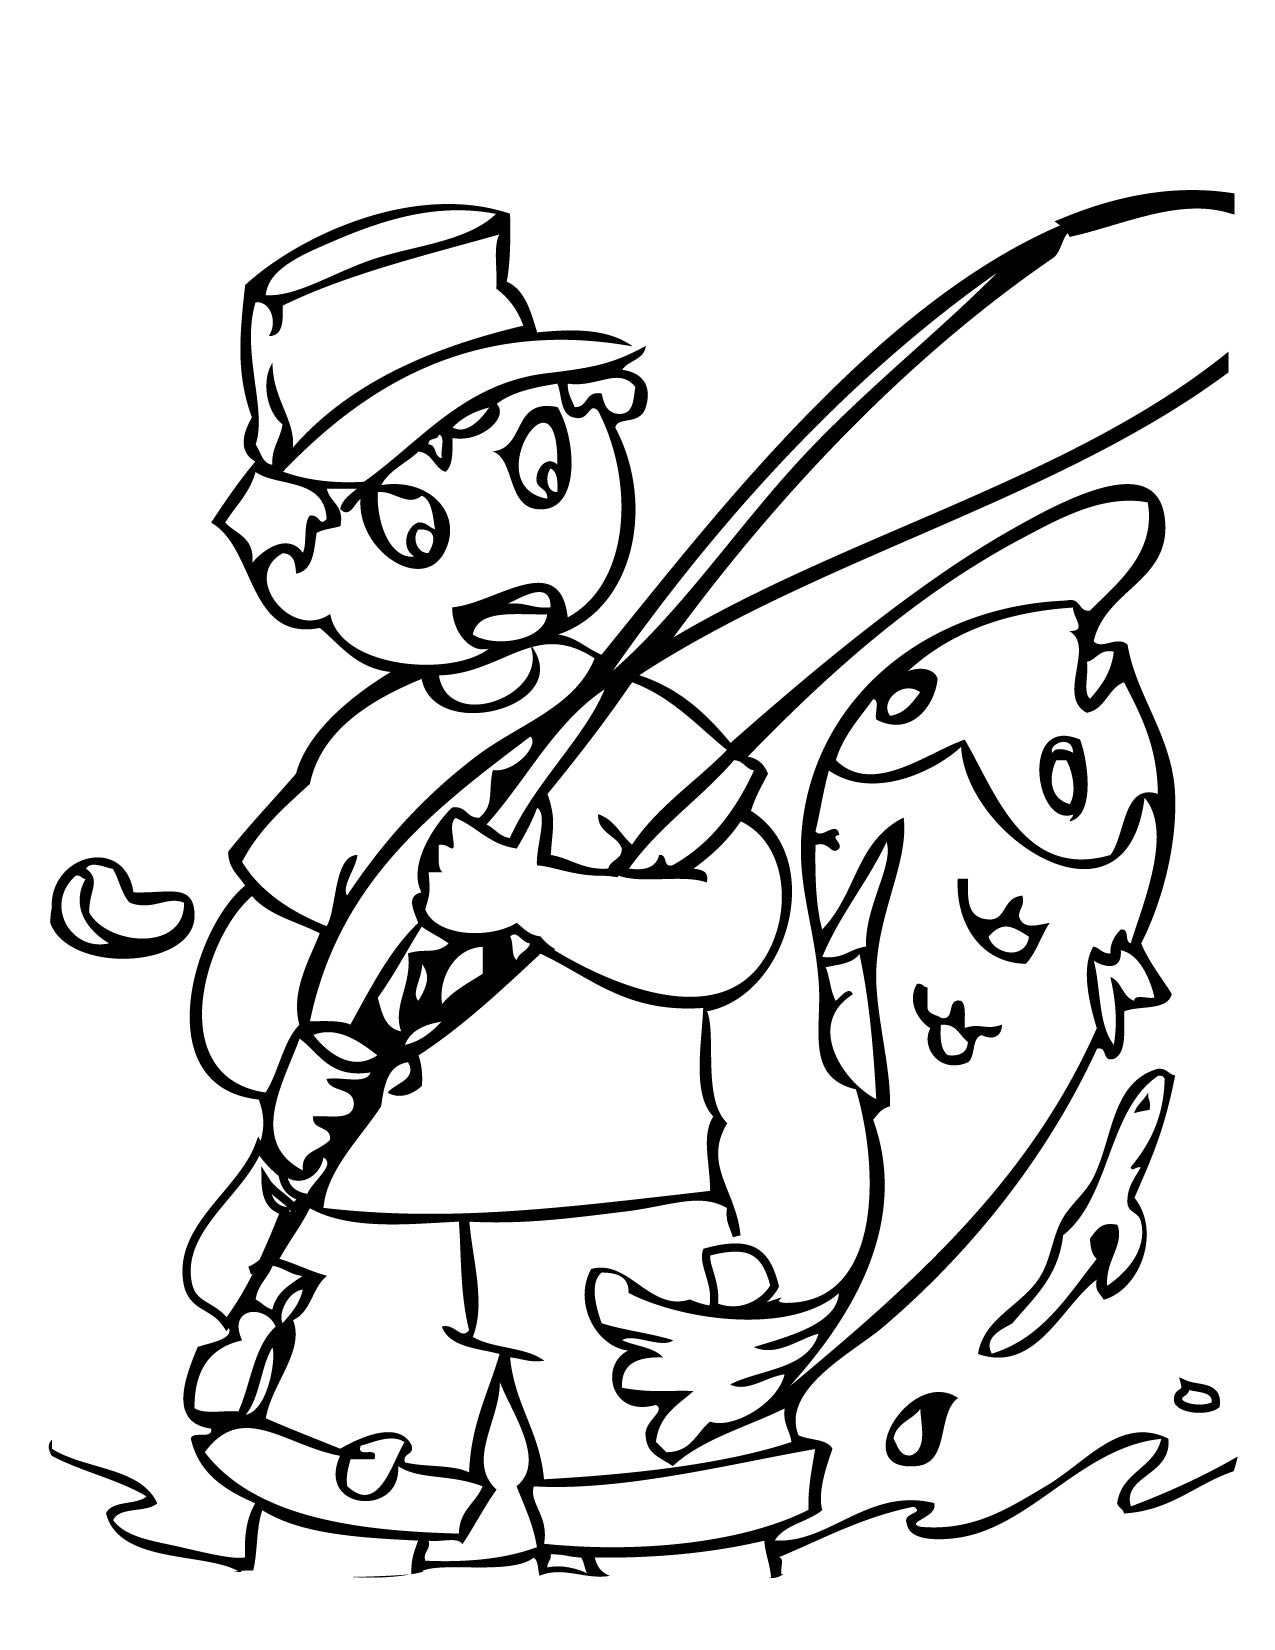 coloring pages of fishing - photo#5